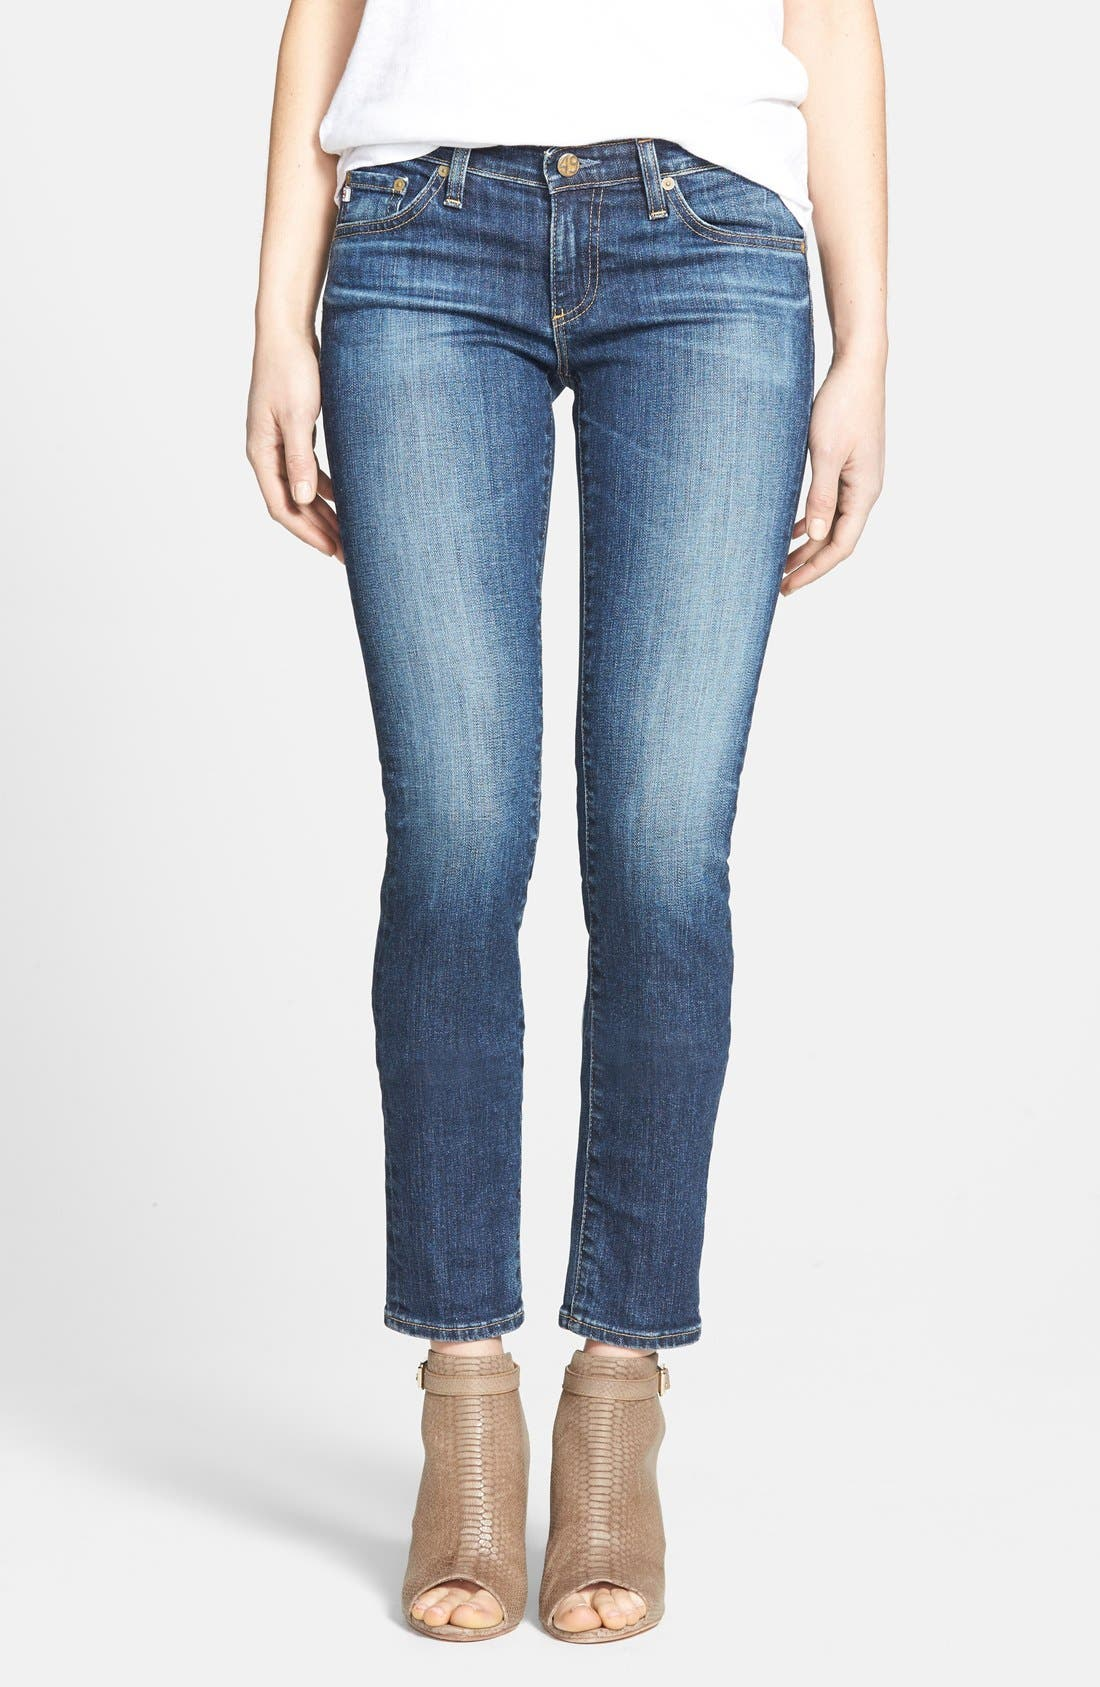 Main Image - AG 'The Stilt' Cigarette Leg Stretch Jeans (Eleven Year Intrigue) (Nordstrom Exclusive)